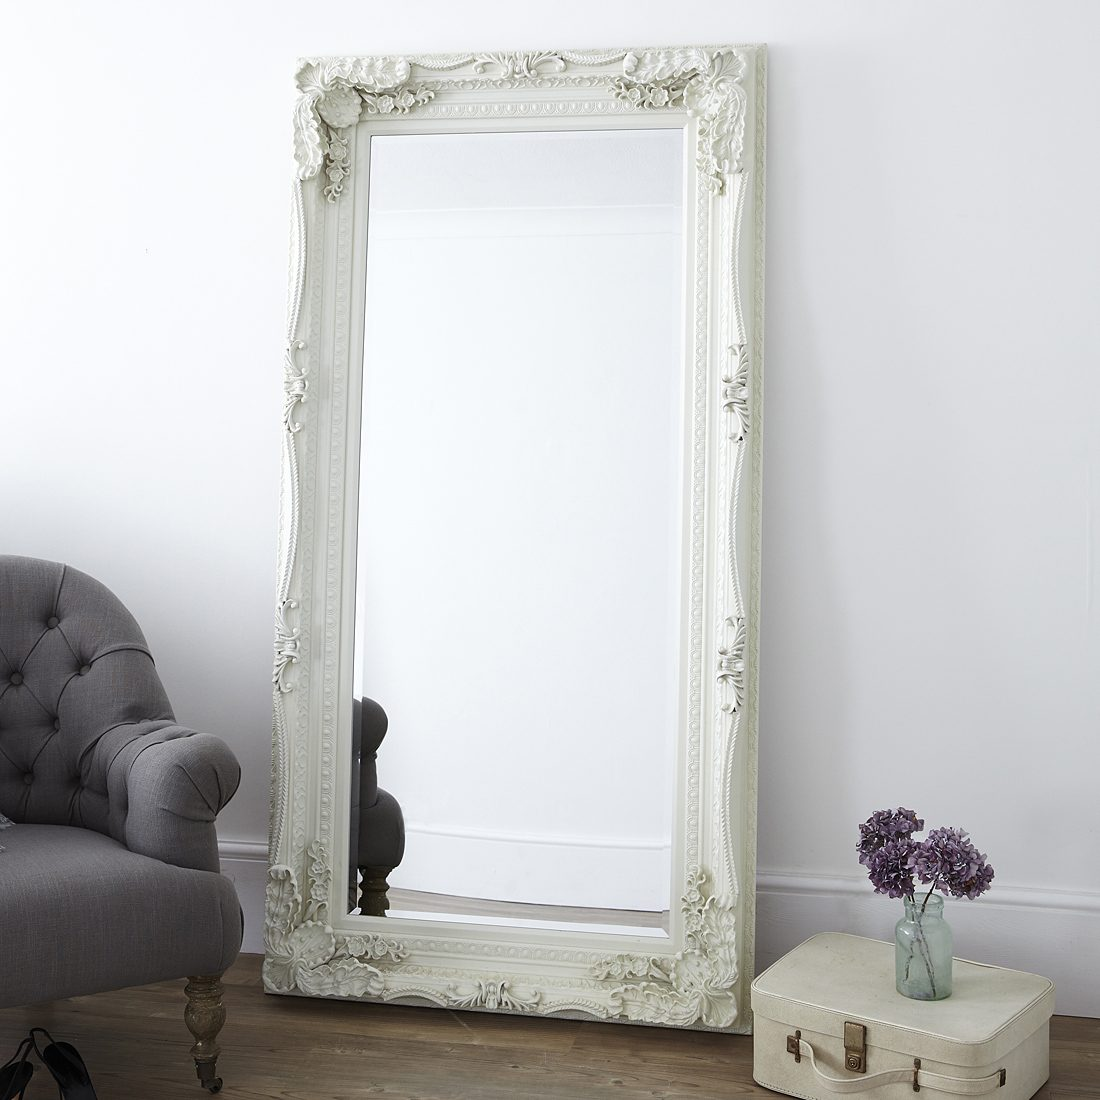 full length mirror in living room modern chairs decorative cream primrose plum dressing with a french style ornate frame